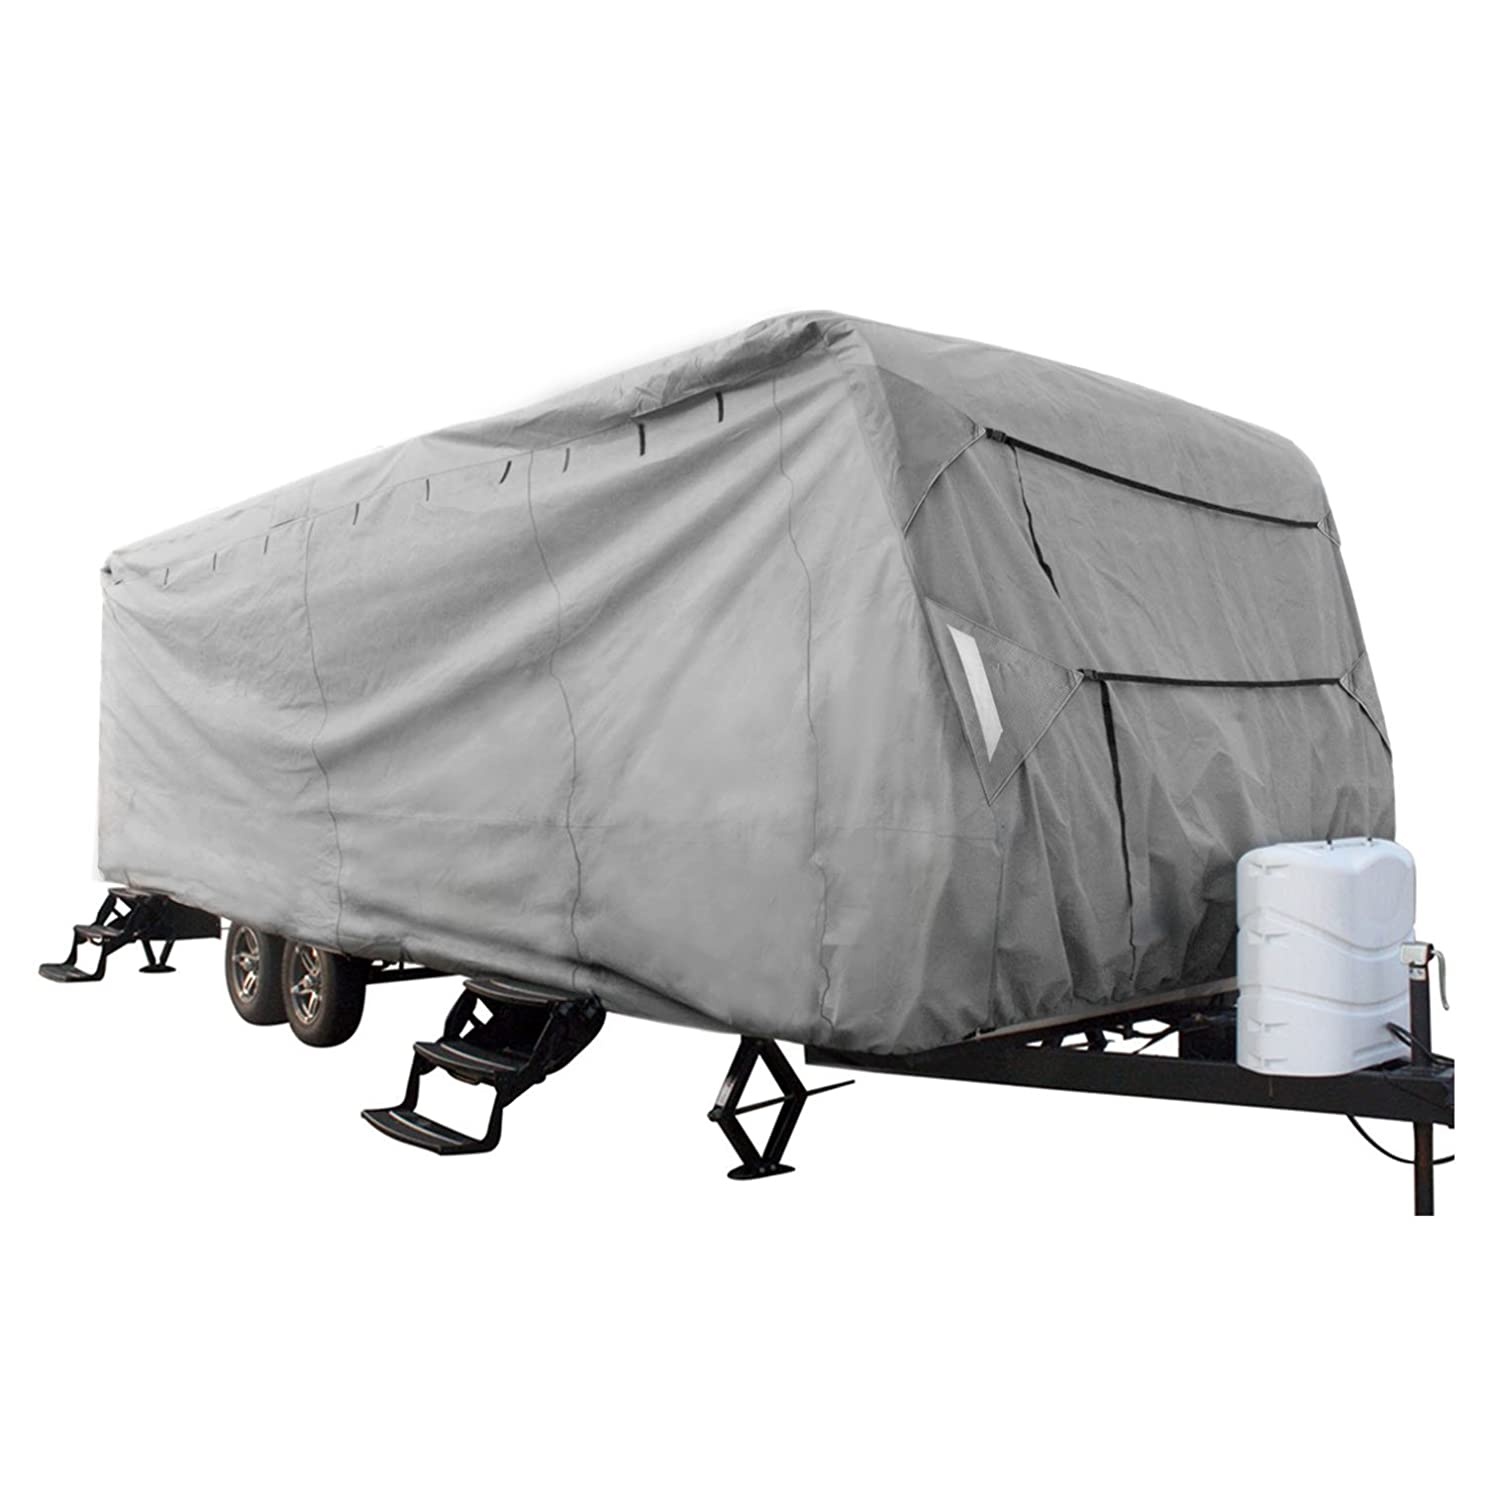 XGear Outdoors Travel Trailer RV Cover, Fits 35' - 38' Travel Trailer or Toy Hauler, with 3-Ply Roof for Max Weather Protection, Grey Fits 35' - 38' Travel Trailer or Toy Hauler Extreme Outdoor Accessories